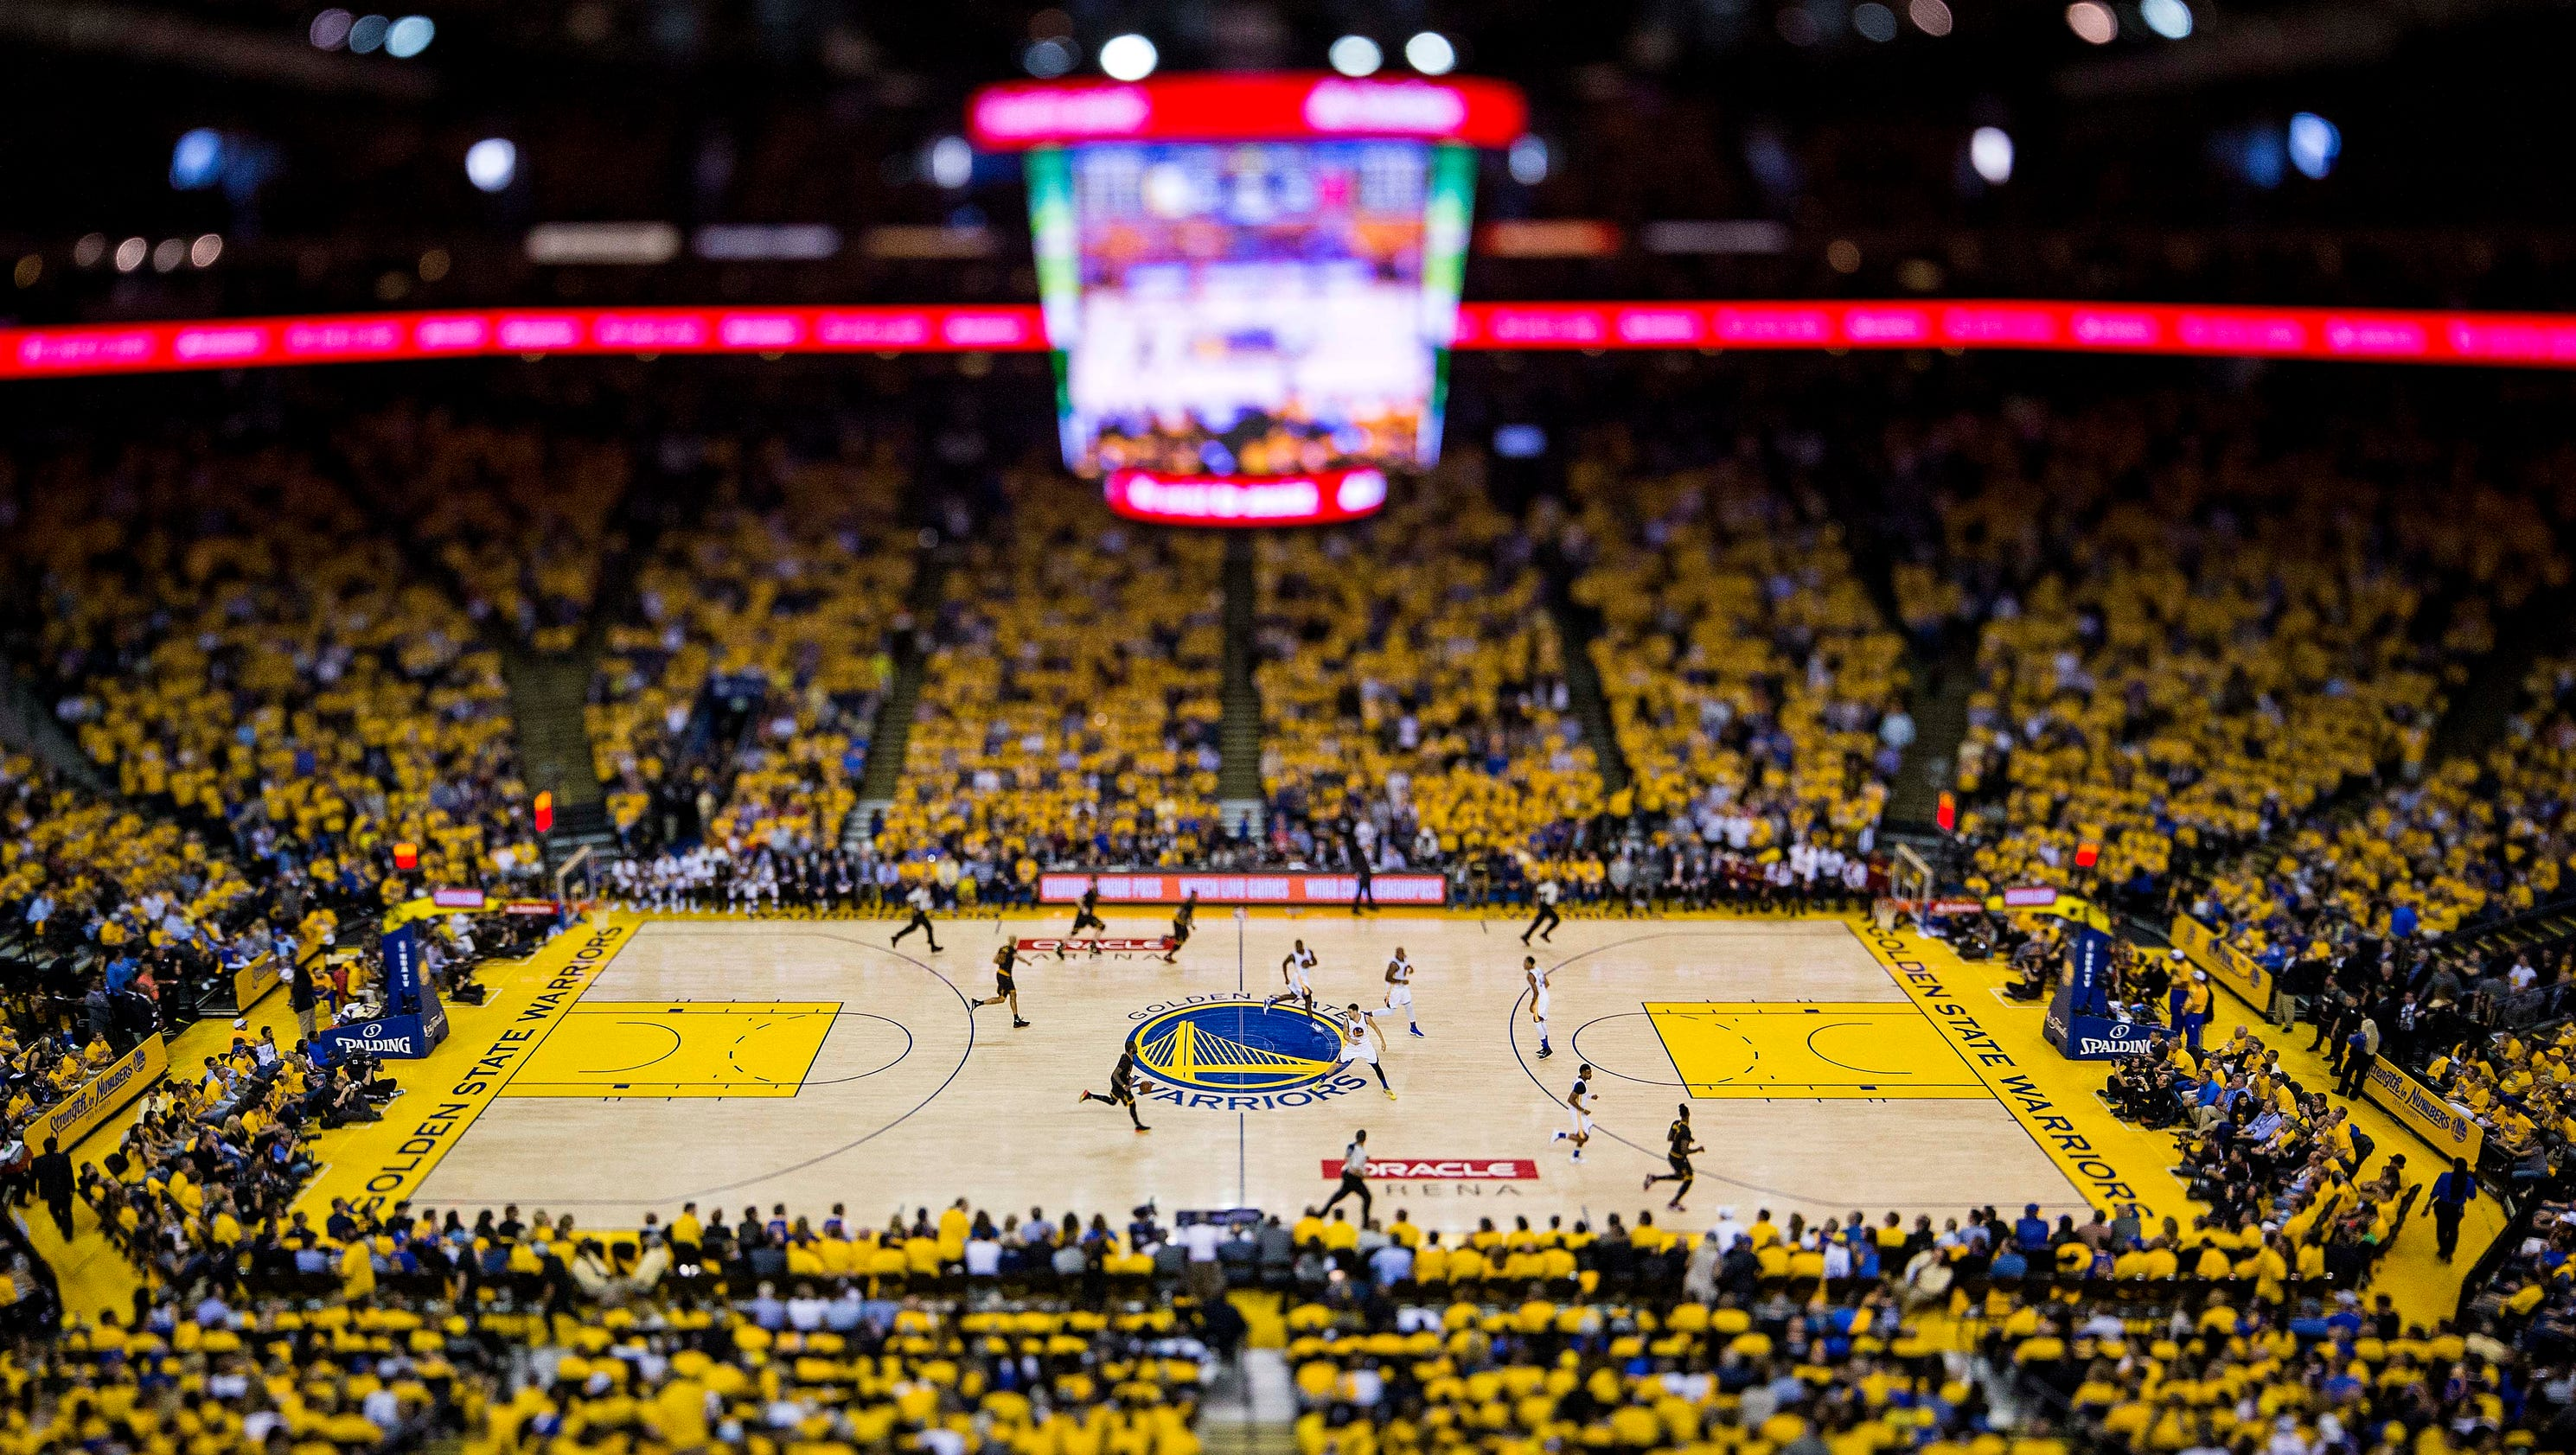 NBA Finals Game 7 tickets near recent Super Bowl prices